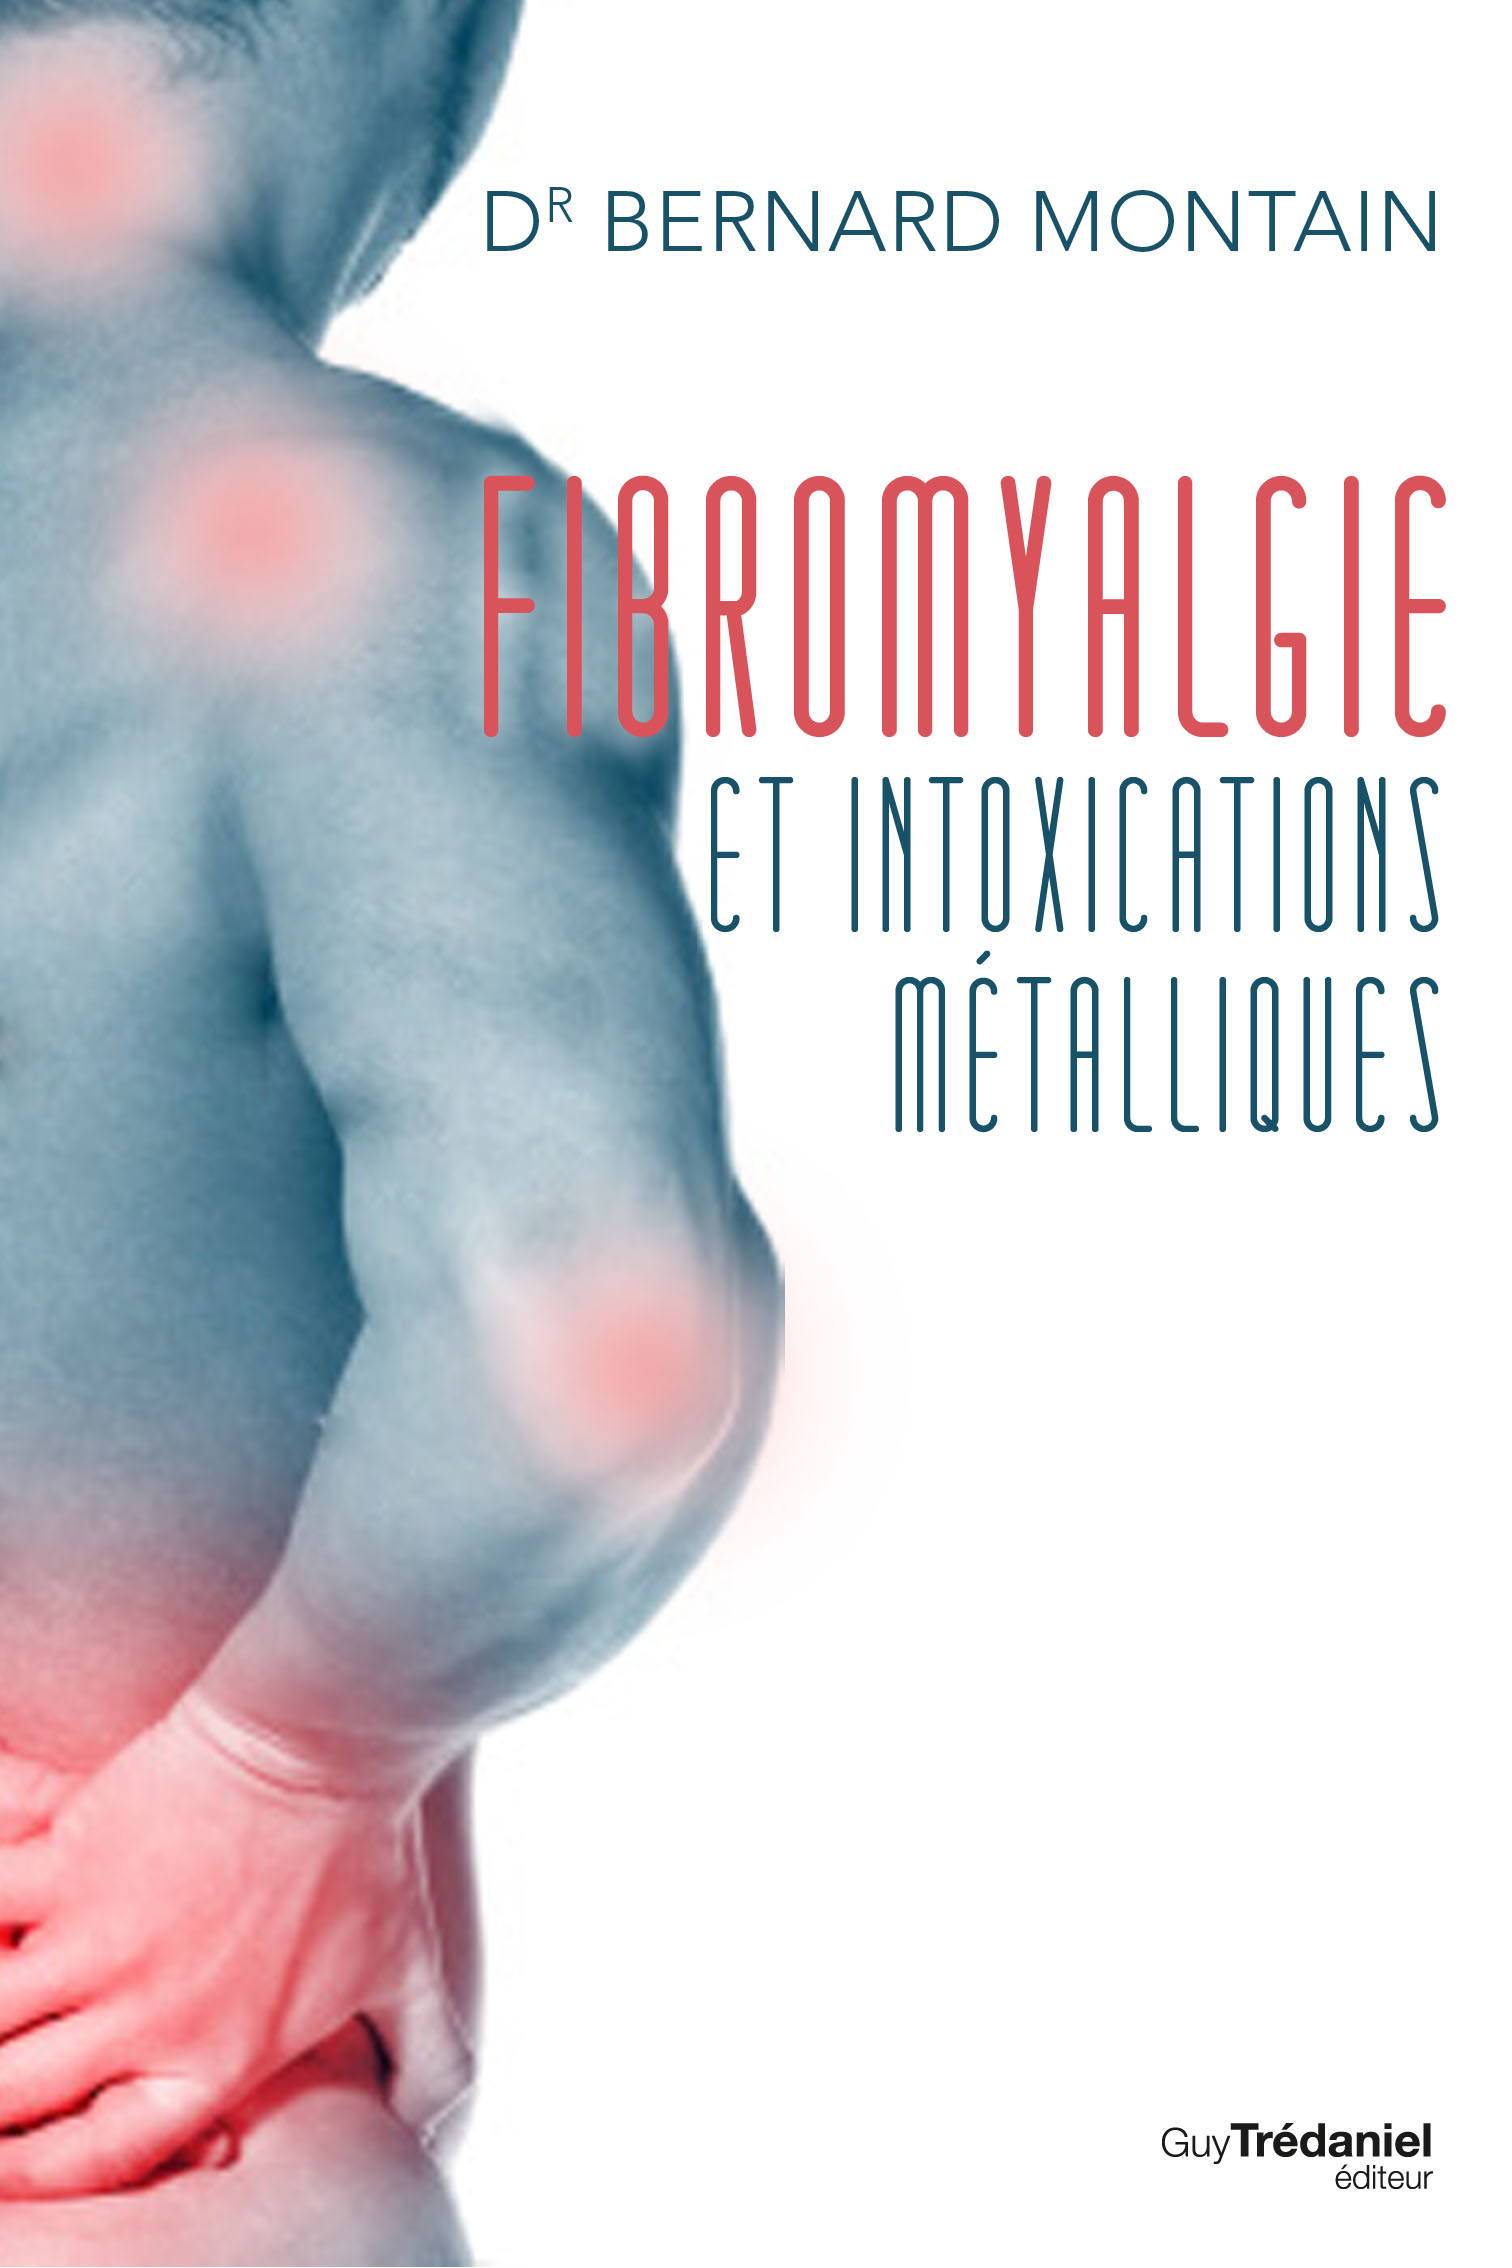 Fibromyalgie : comment avoir un diagnostic fiable ?